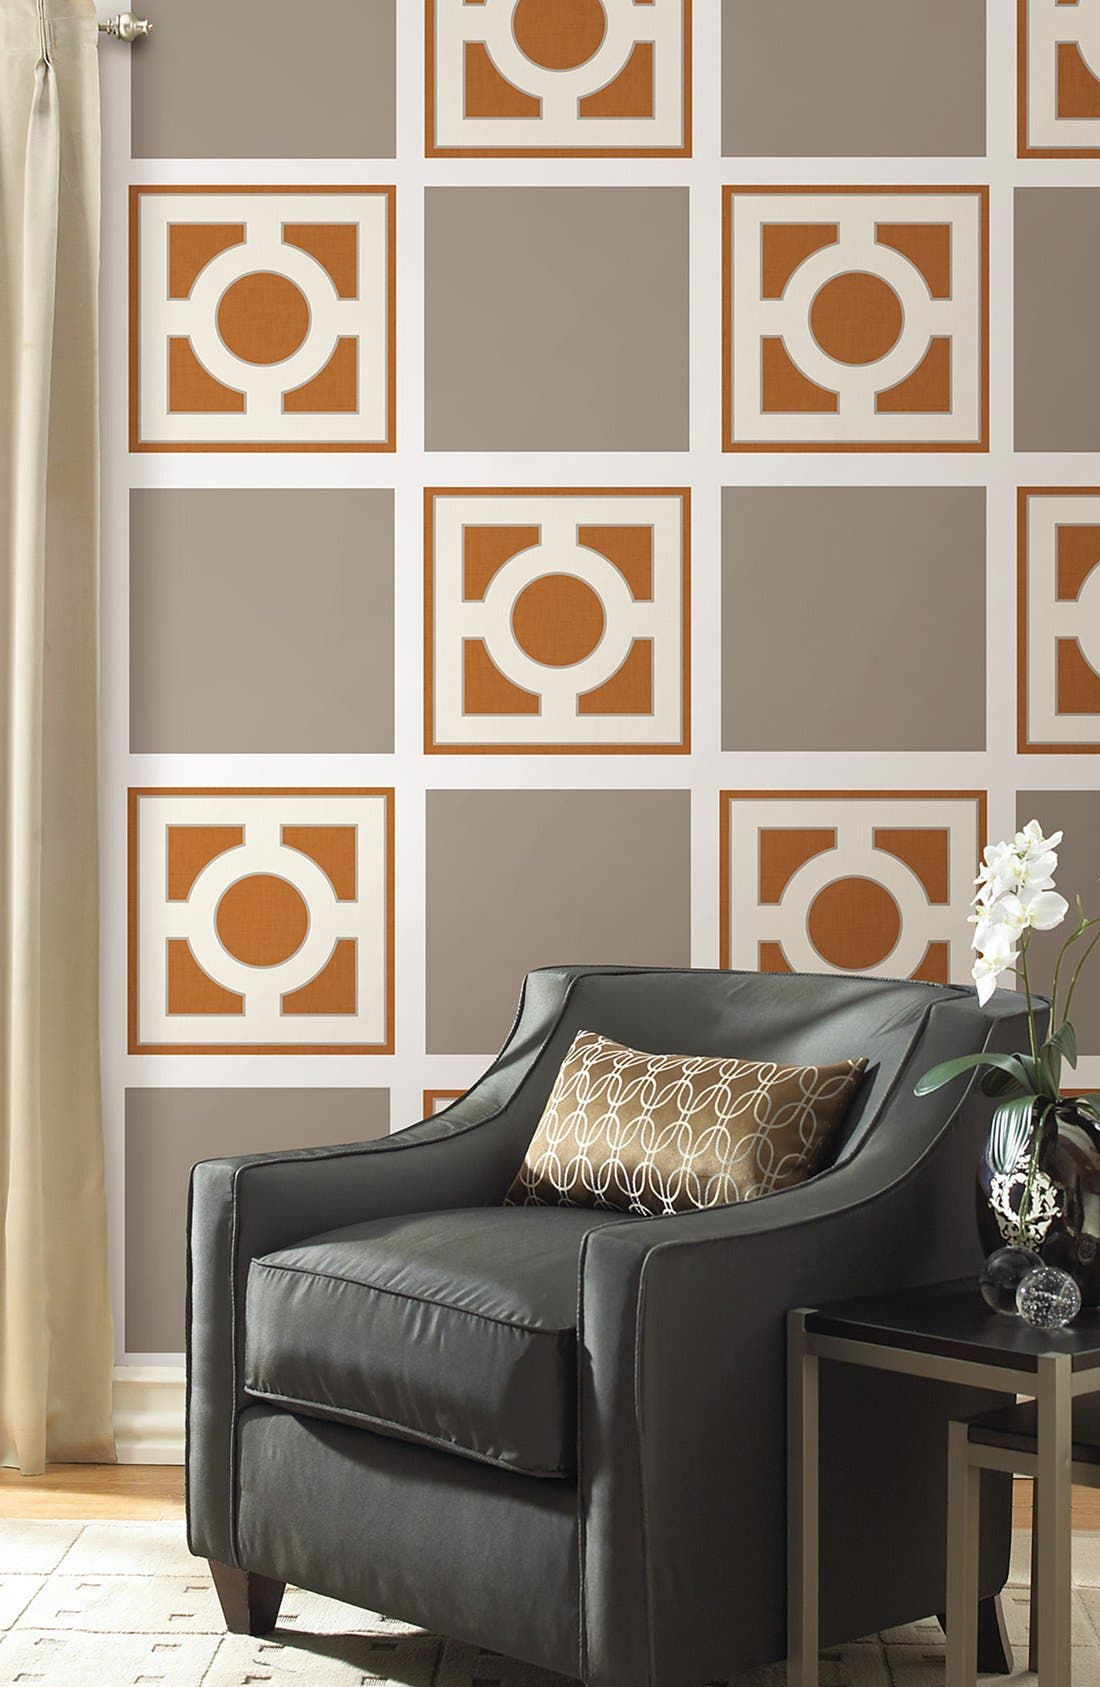 Main Image - Wallpops 'Zoe & Pebble Blox' Wall Art